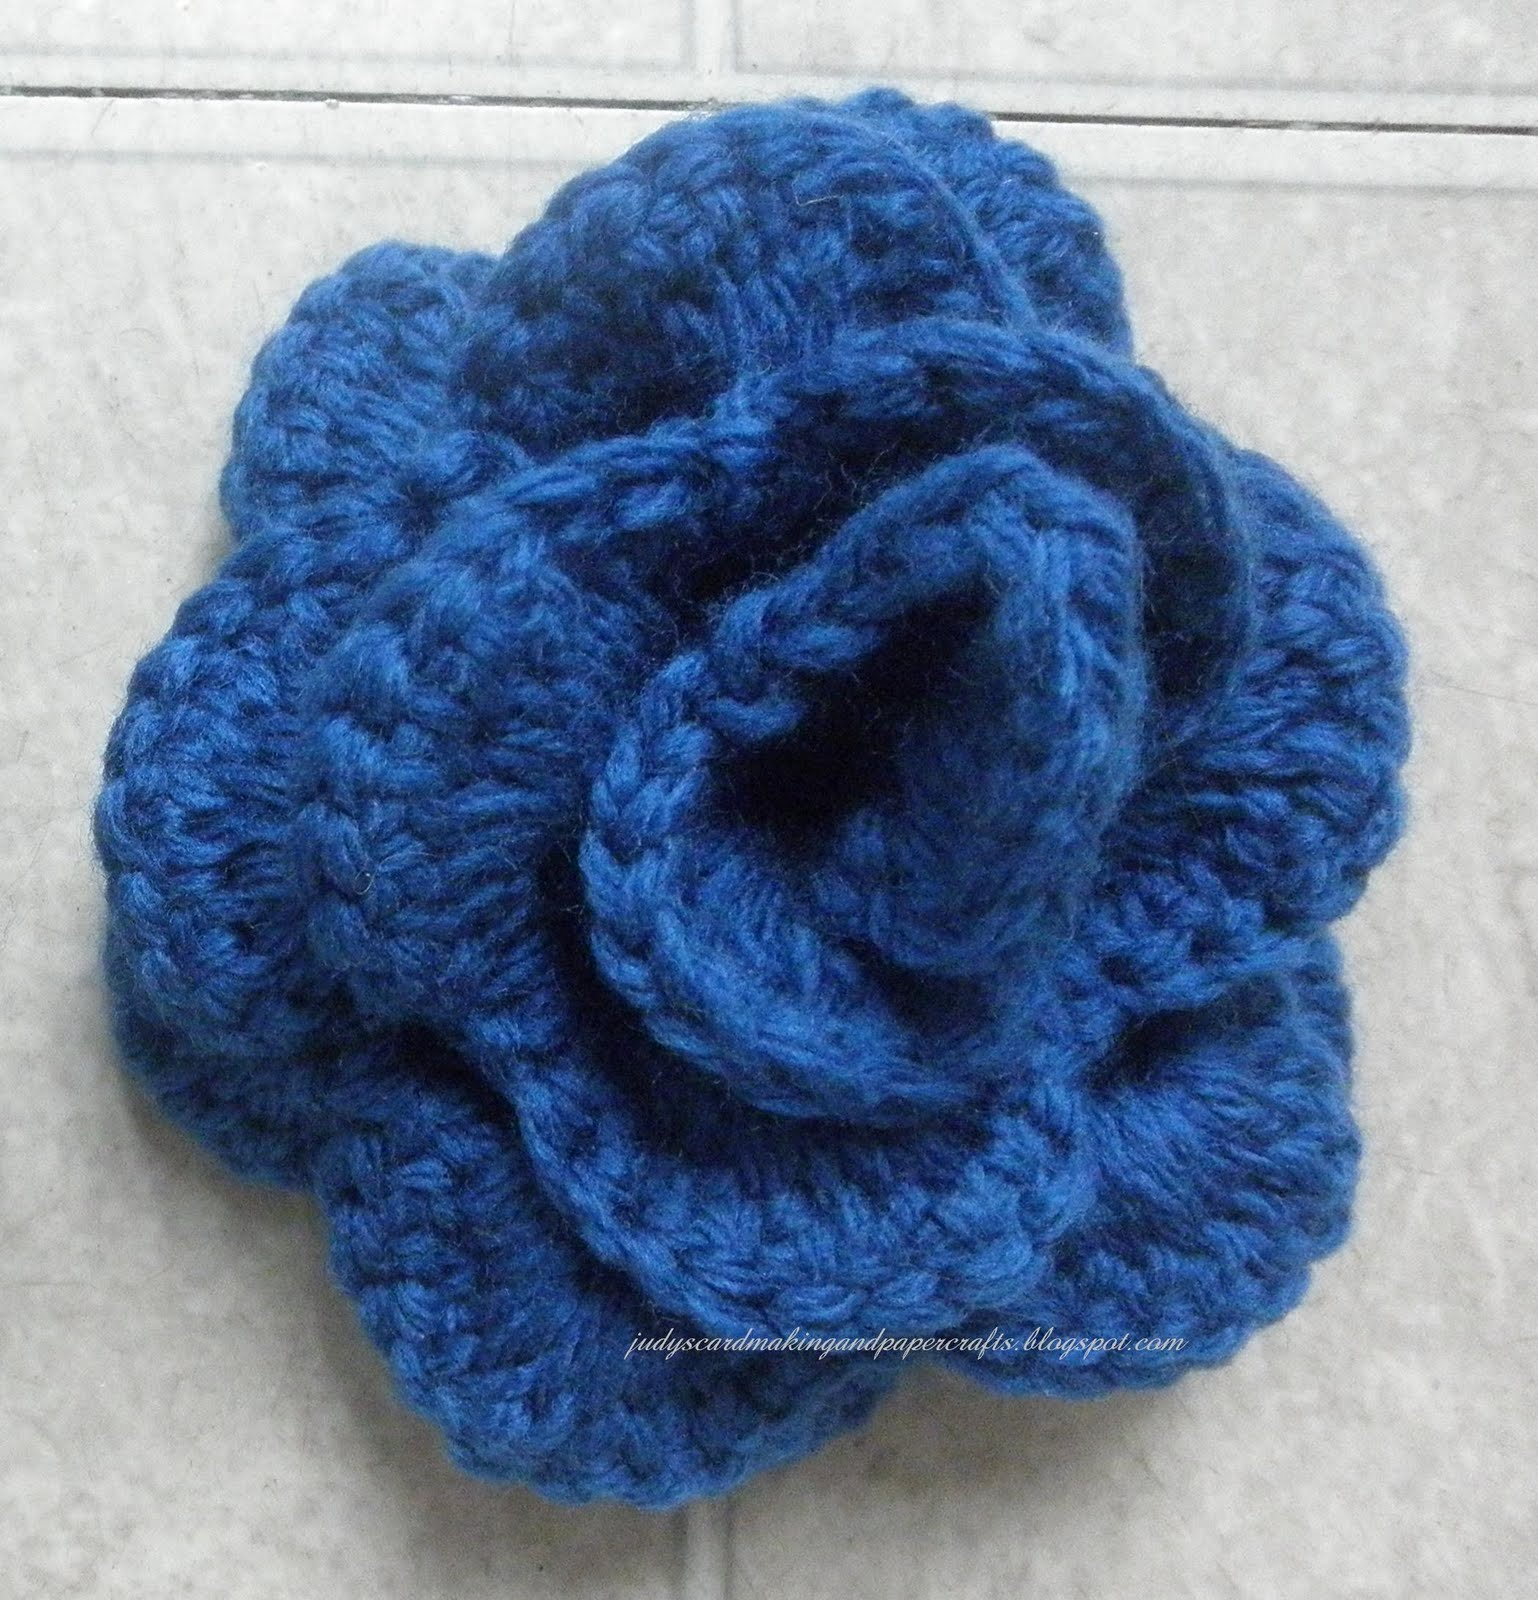 Crochet Patterns Roses Free : FREE CROCHET PATTERNS ROSES - Crochet and Knitting Patterns